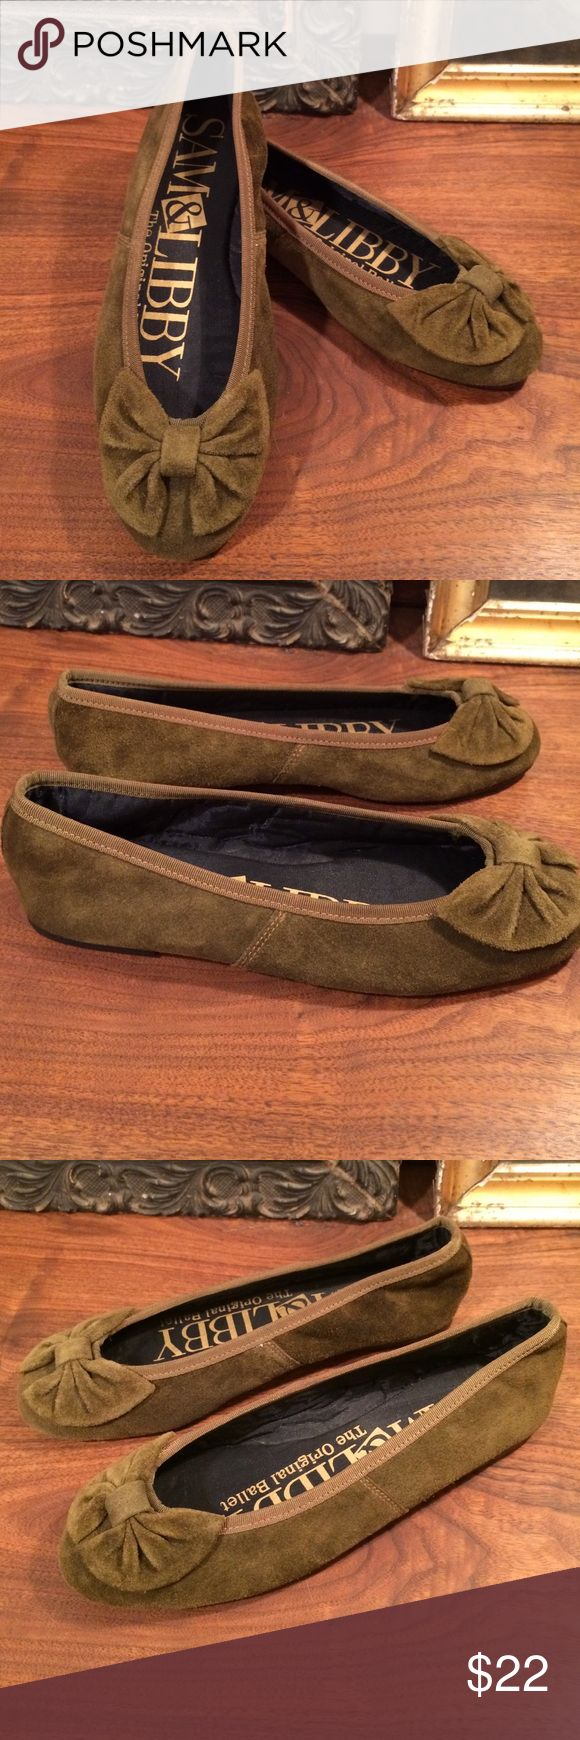 Vtg Olive Green Suede Sam & Libby Ballerina Flats I am so incredibly sad these don't fit as they might just be the cutest ballet flats ever. I was a big Sam & Libby fan back in the day and these remind me why! The color on these is a rich olive green suede and will work so lovely with rich autumnal hues. Labeled a 6.5 and I would put these on the 6/6.5 side of sizing as I am 6.5-7 and they were too snug for me to keep. Perfect condition - do not appear to have ever been worn. Vintage Shoes…